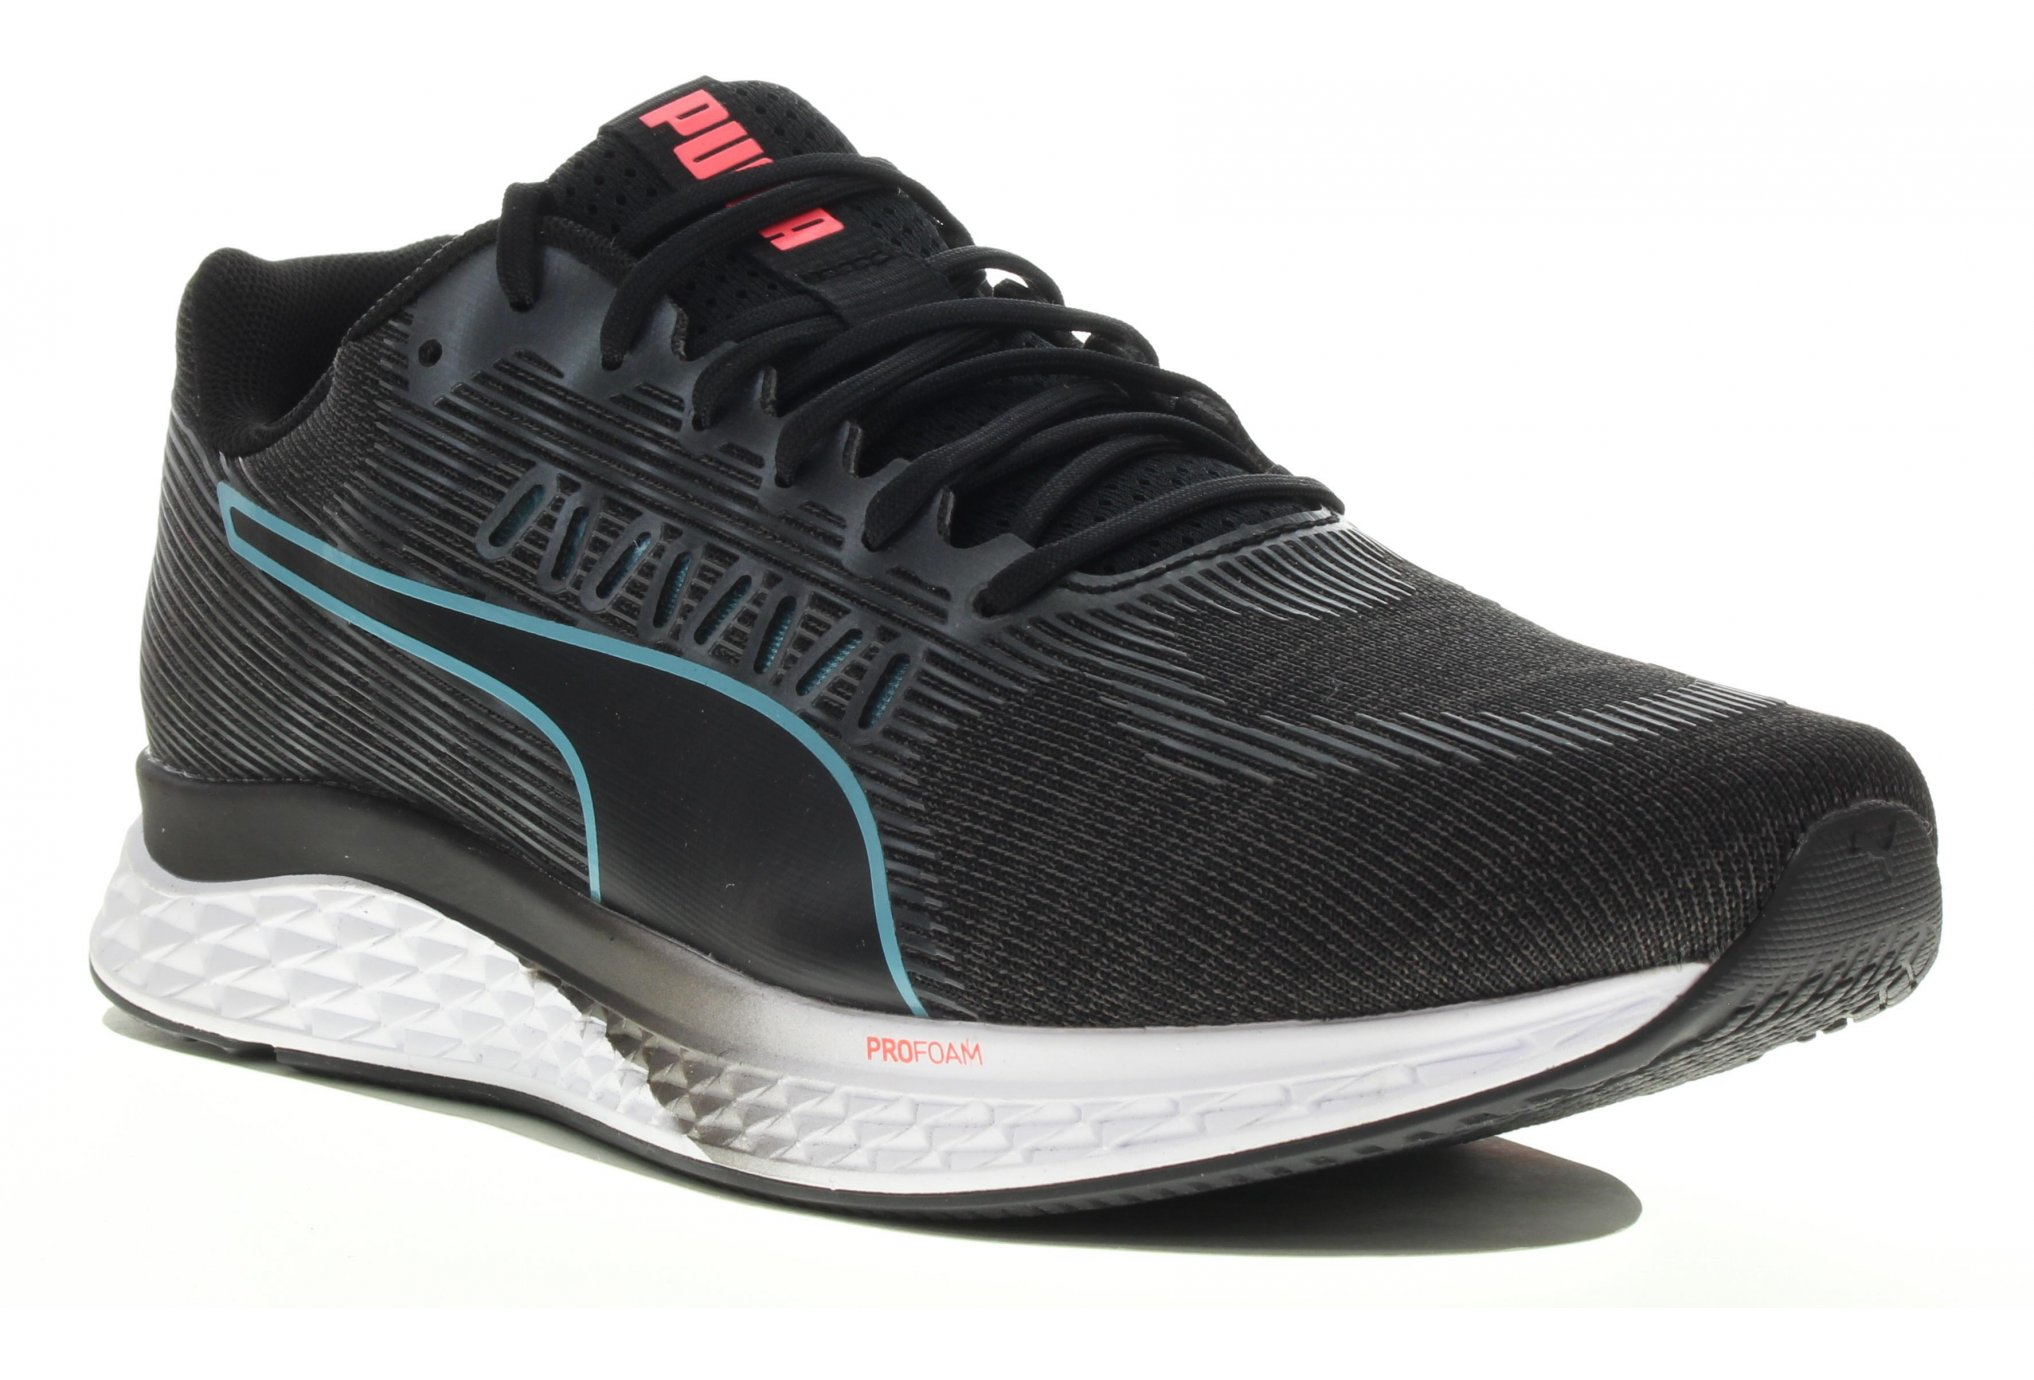 Puma Speed Sutamina W Chaussures running femme